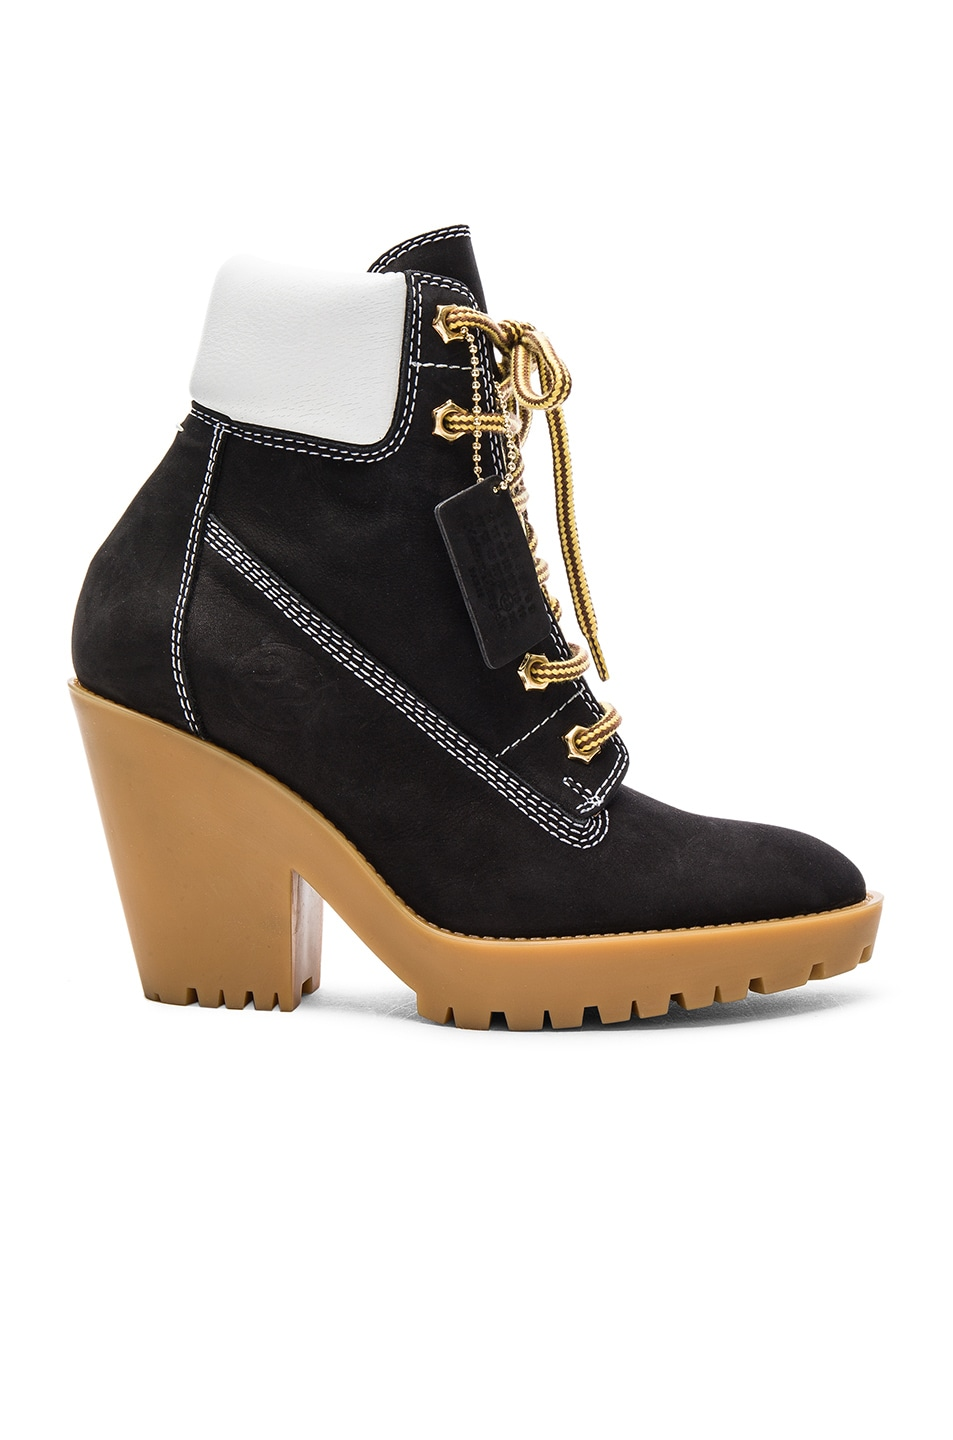 Image 1 of Maison Margiela Lace Up Suede Booties in Black